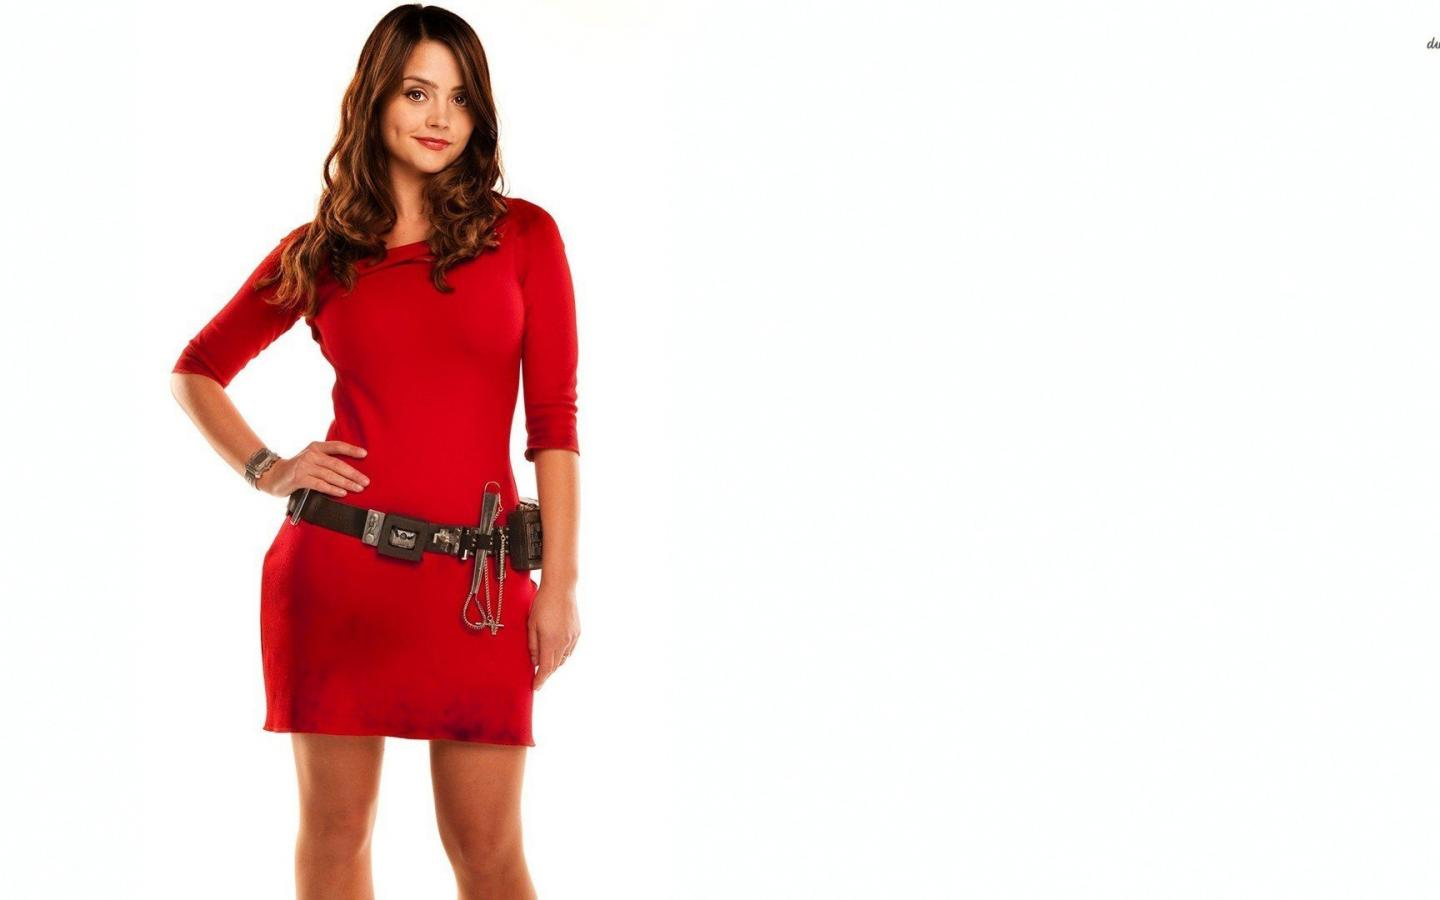 1440x900 - Jenna-Louise Coleman Wallpapers 19